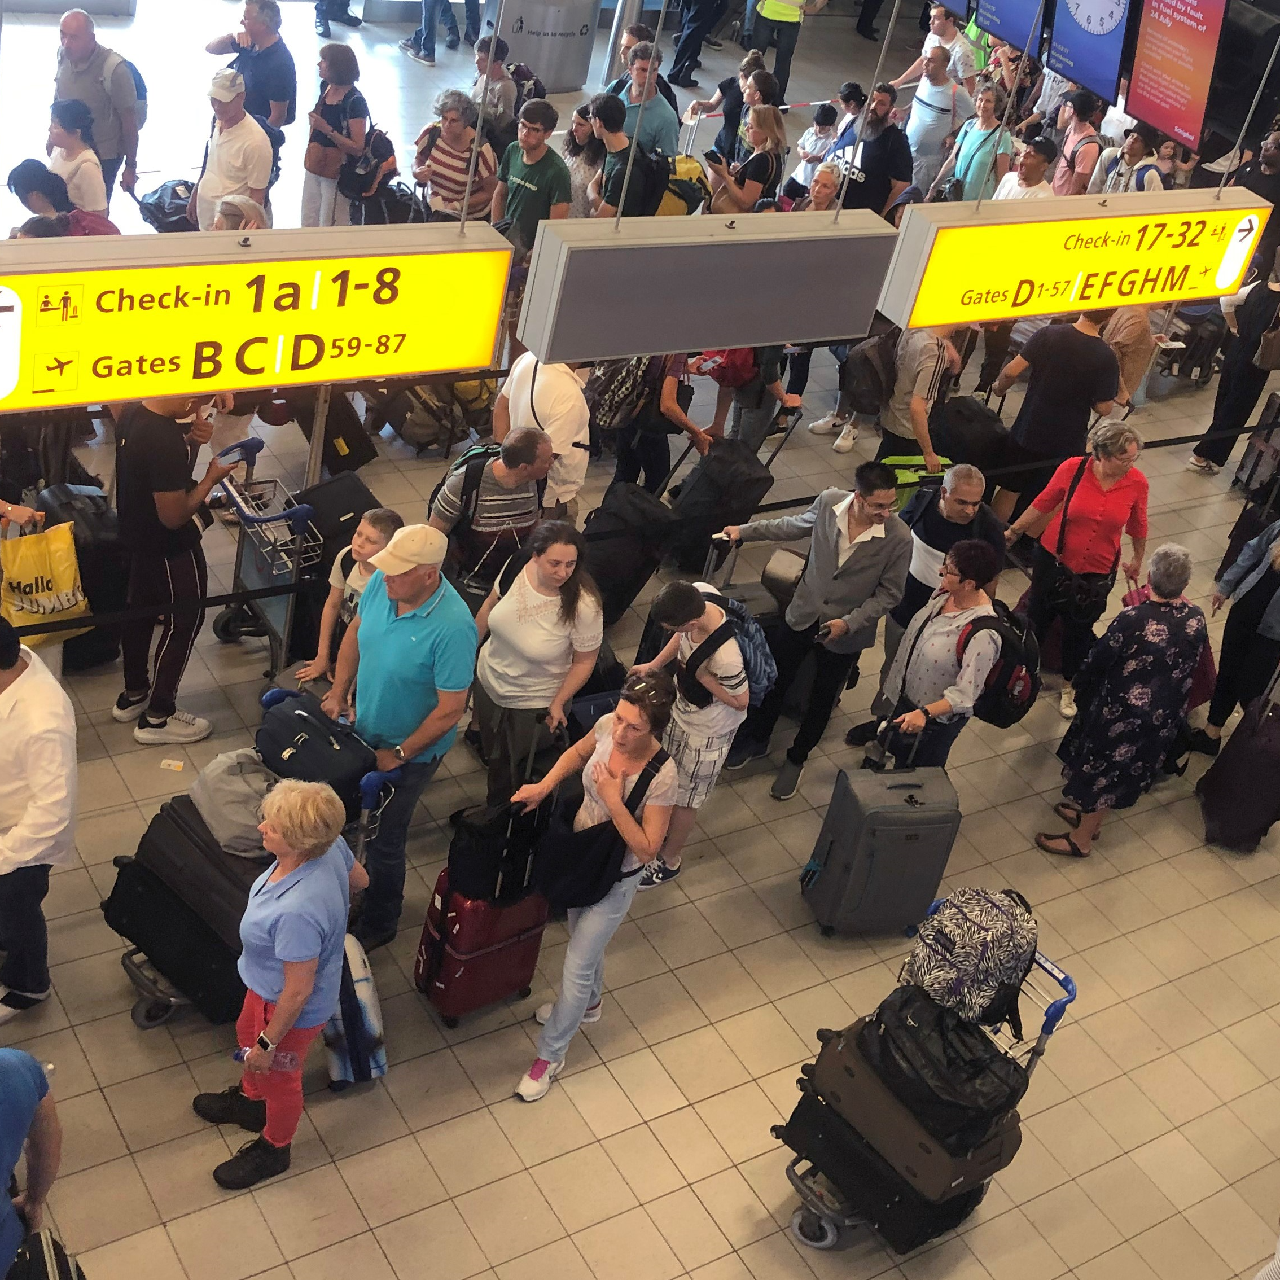 Post-pandemic Contactless Airports 'could Be Upgrade For